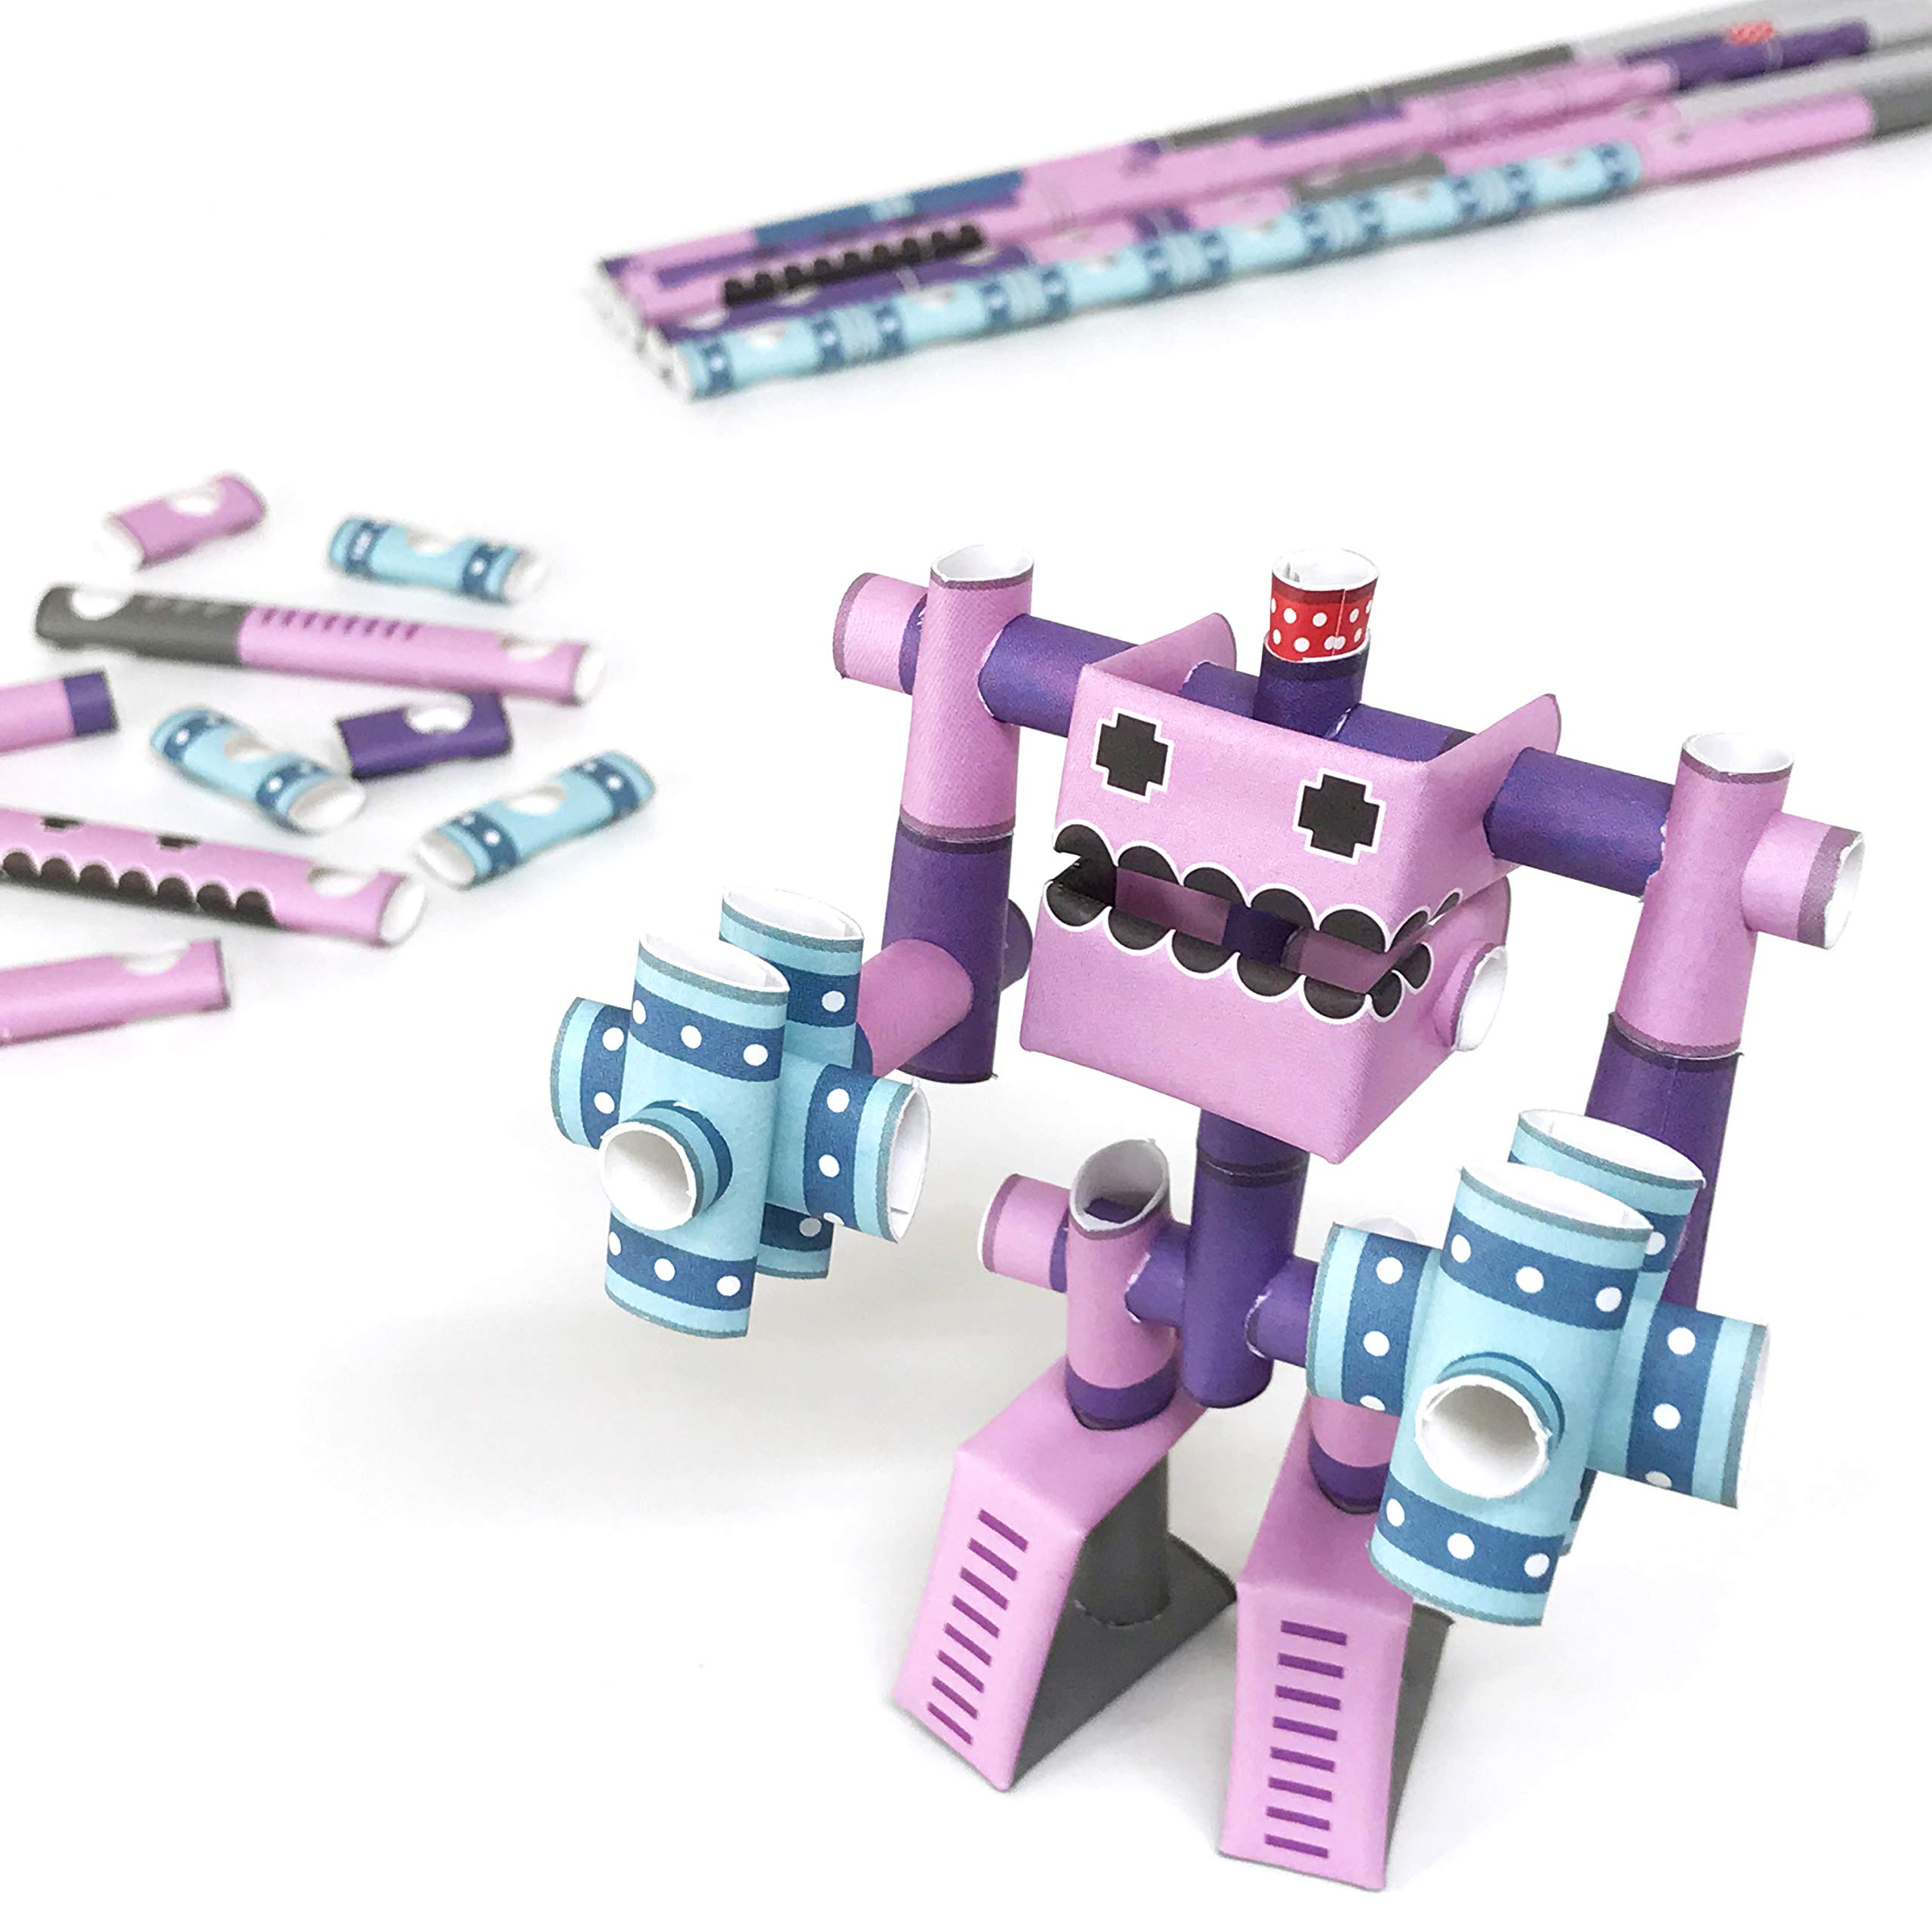 PIPEROID DIY Paper Craft Kit Hammer Rose - Japanese Arts and Craft Kit for Kids and Adults - Birthday Gift and Party Favor for 3D Puzzle and Origami Paper Craft Enthusiasts